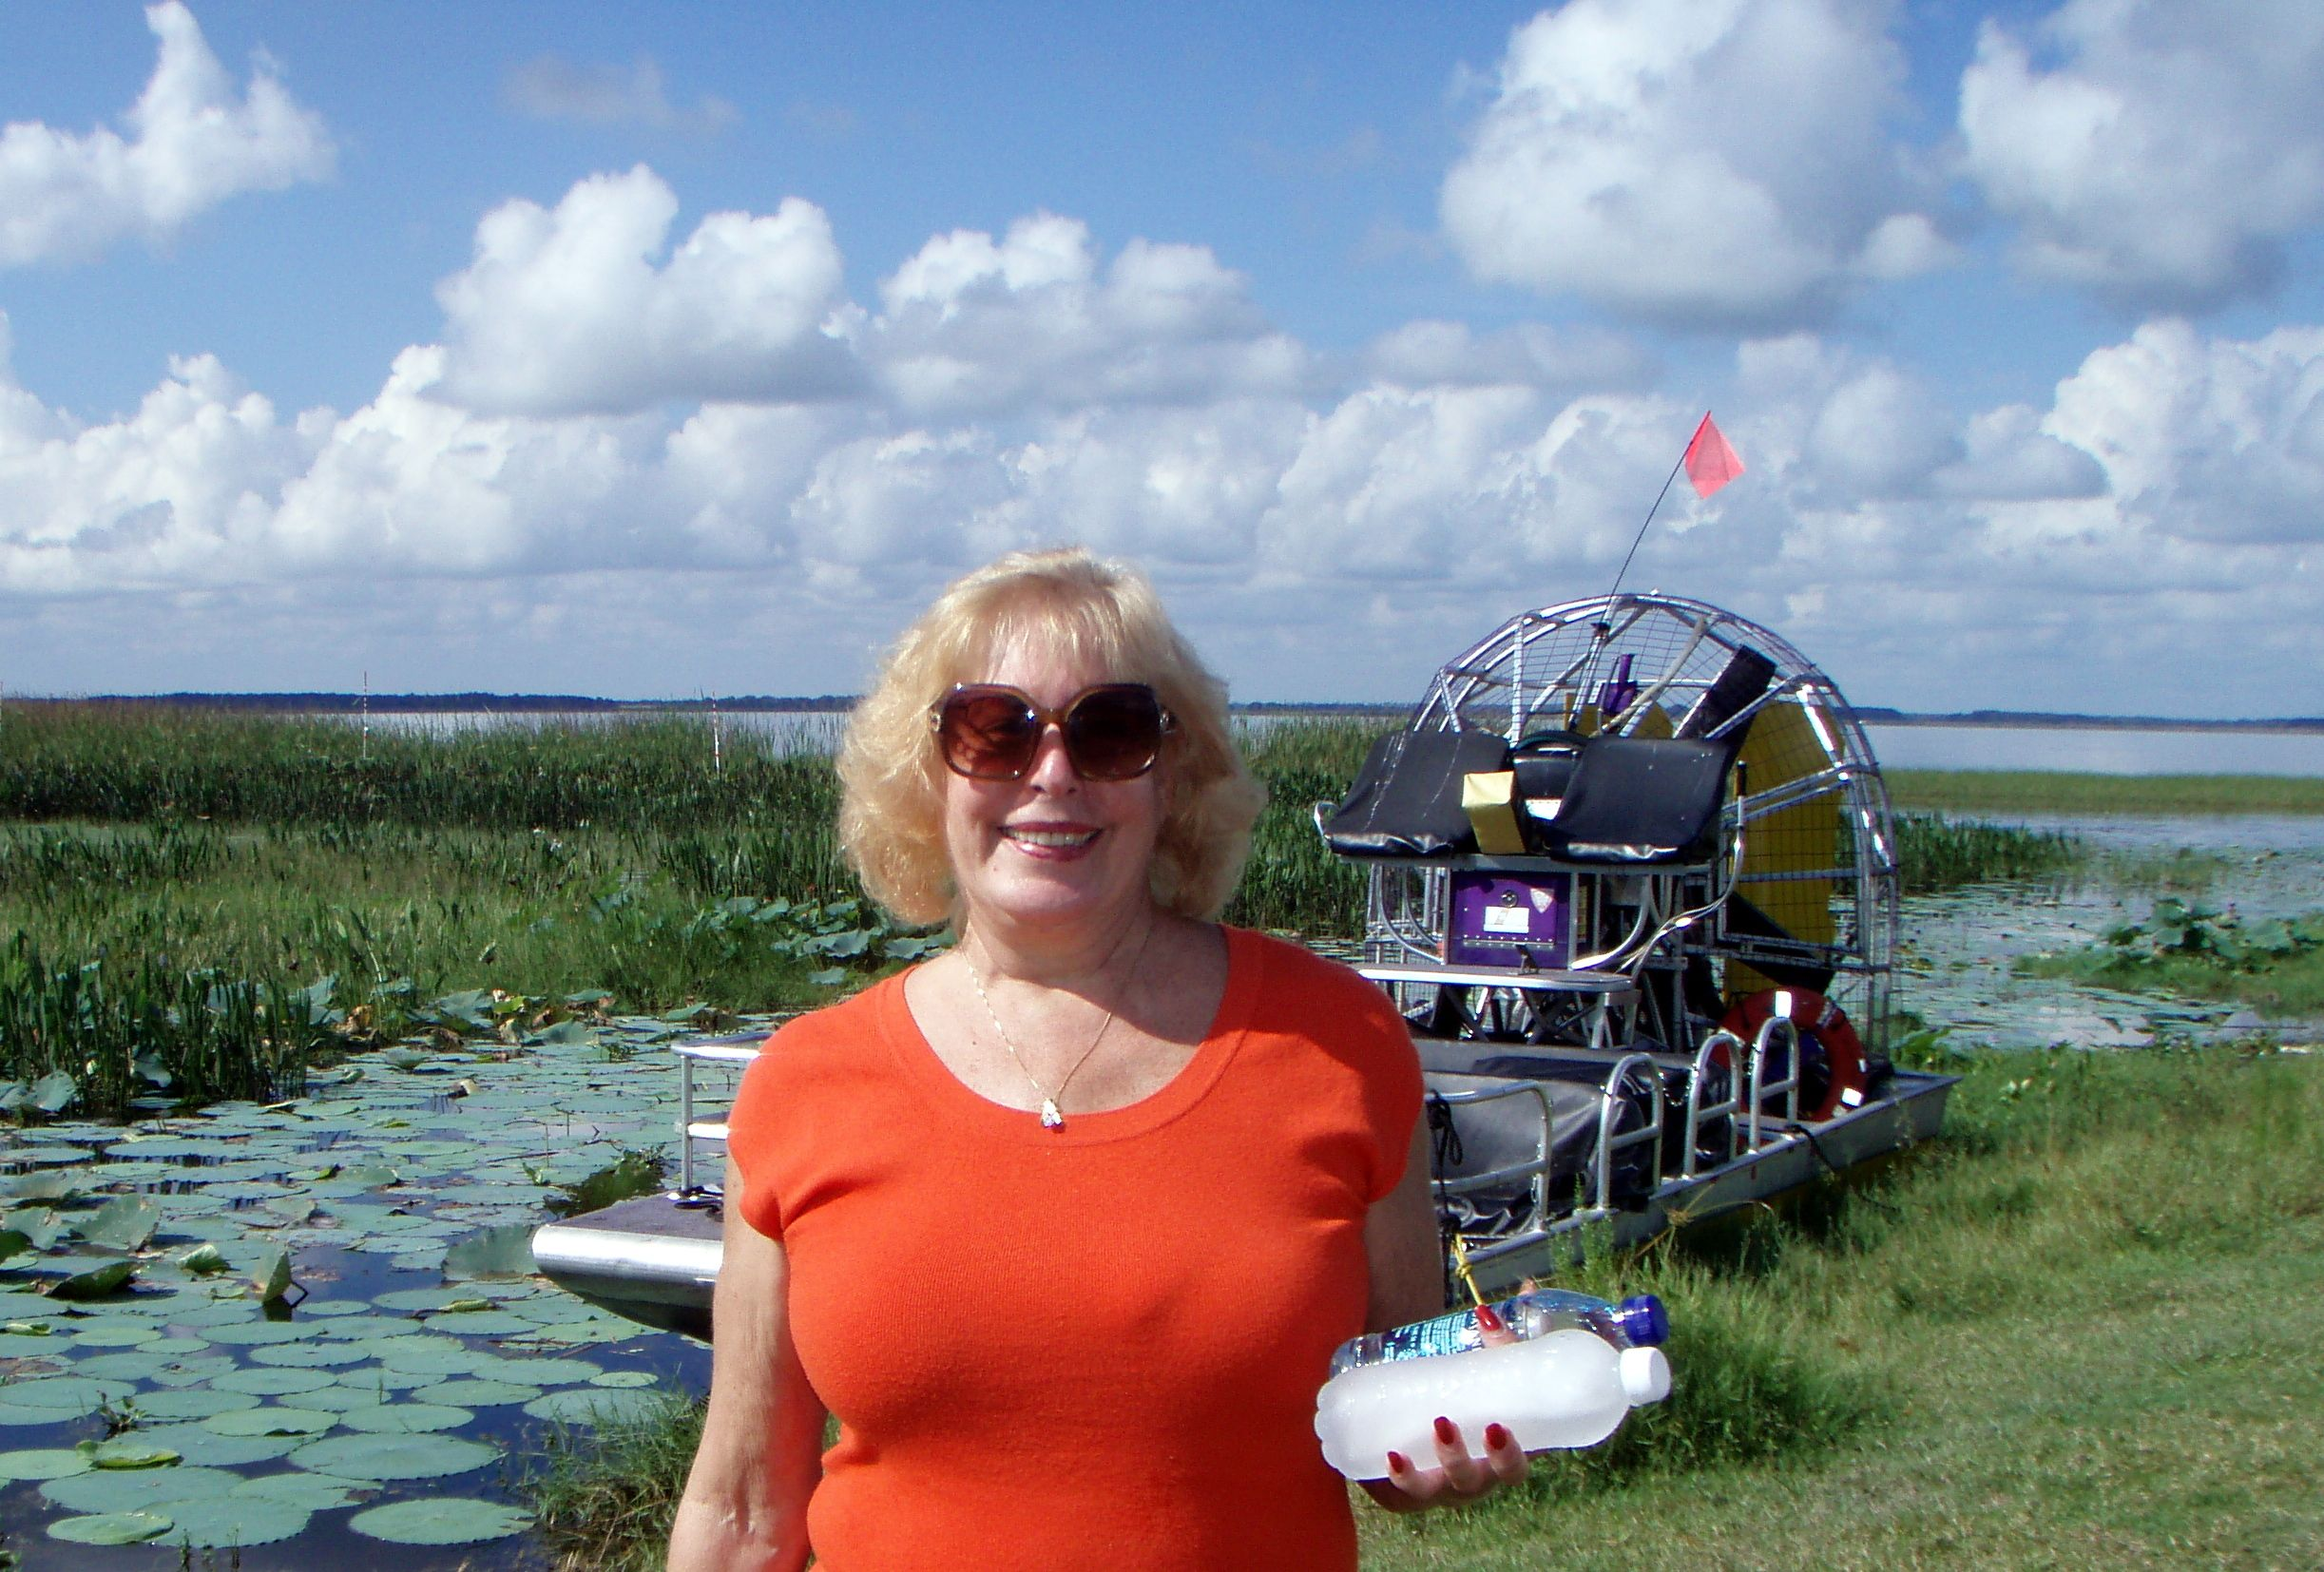 Airboat ride at the source of the Everglades near Orlando